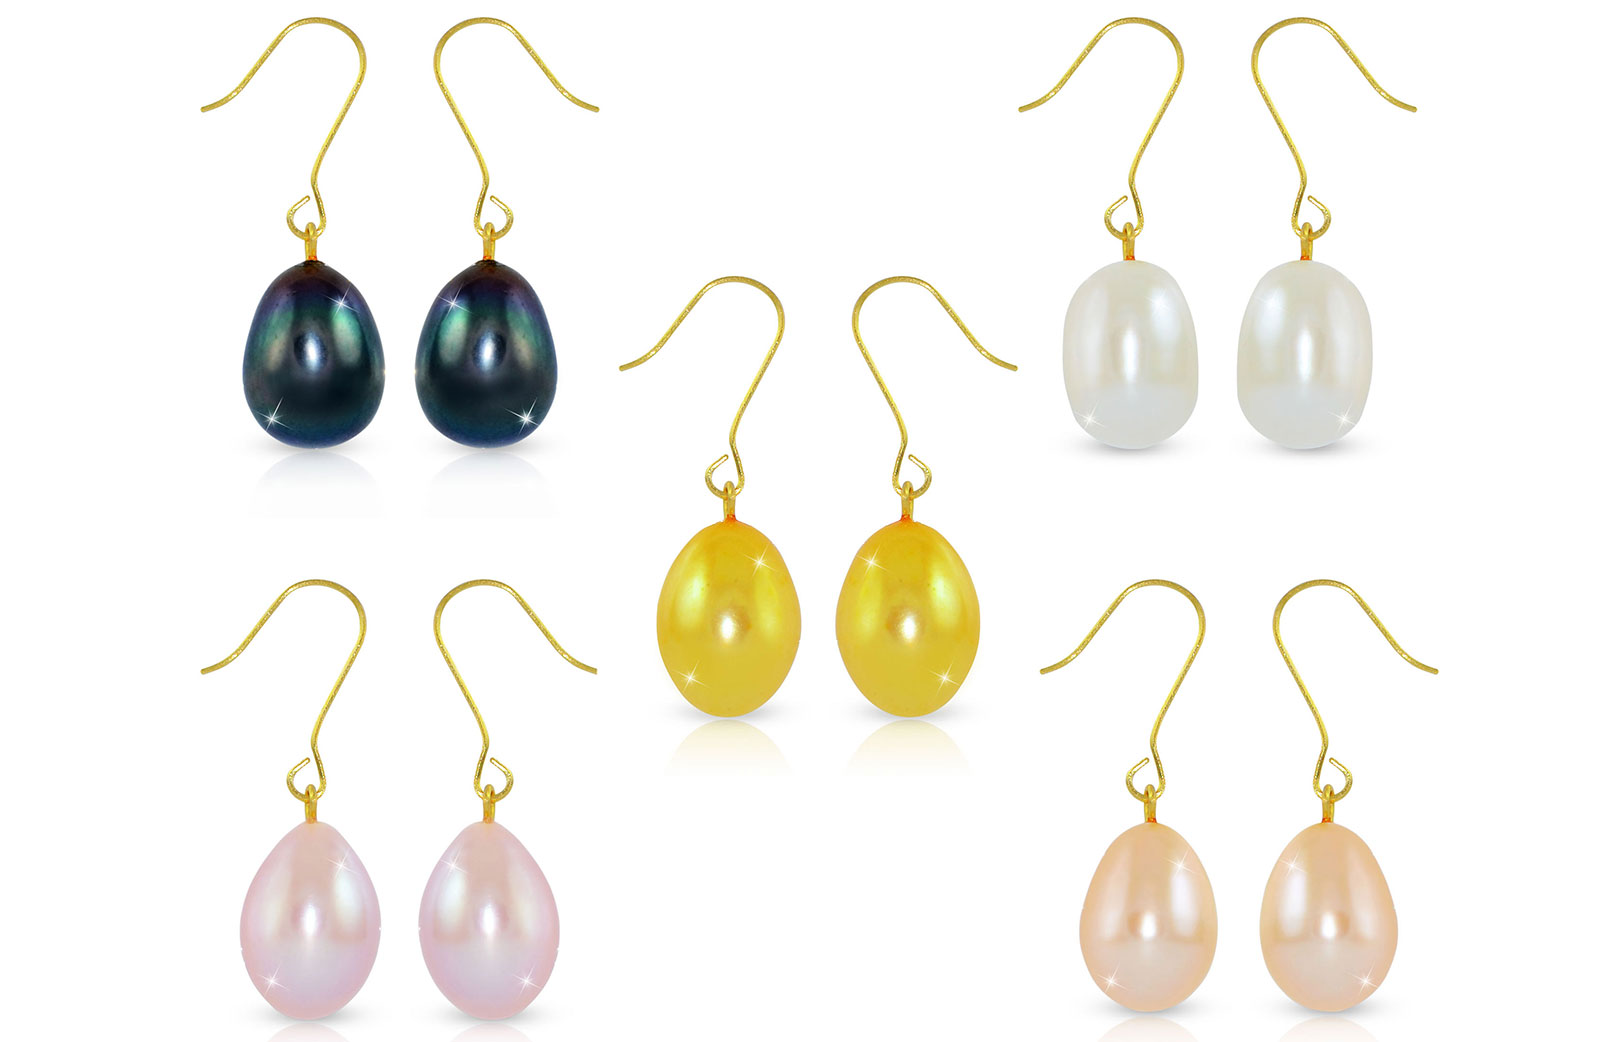 Vera Perla 10K Gold 5 Pairs Multicolor 9-10mm  Big Pearls Earrings